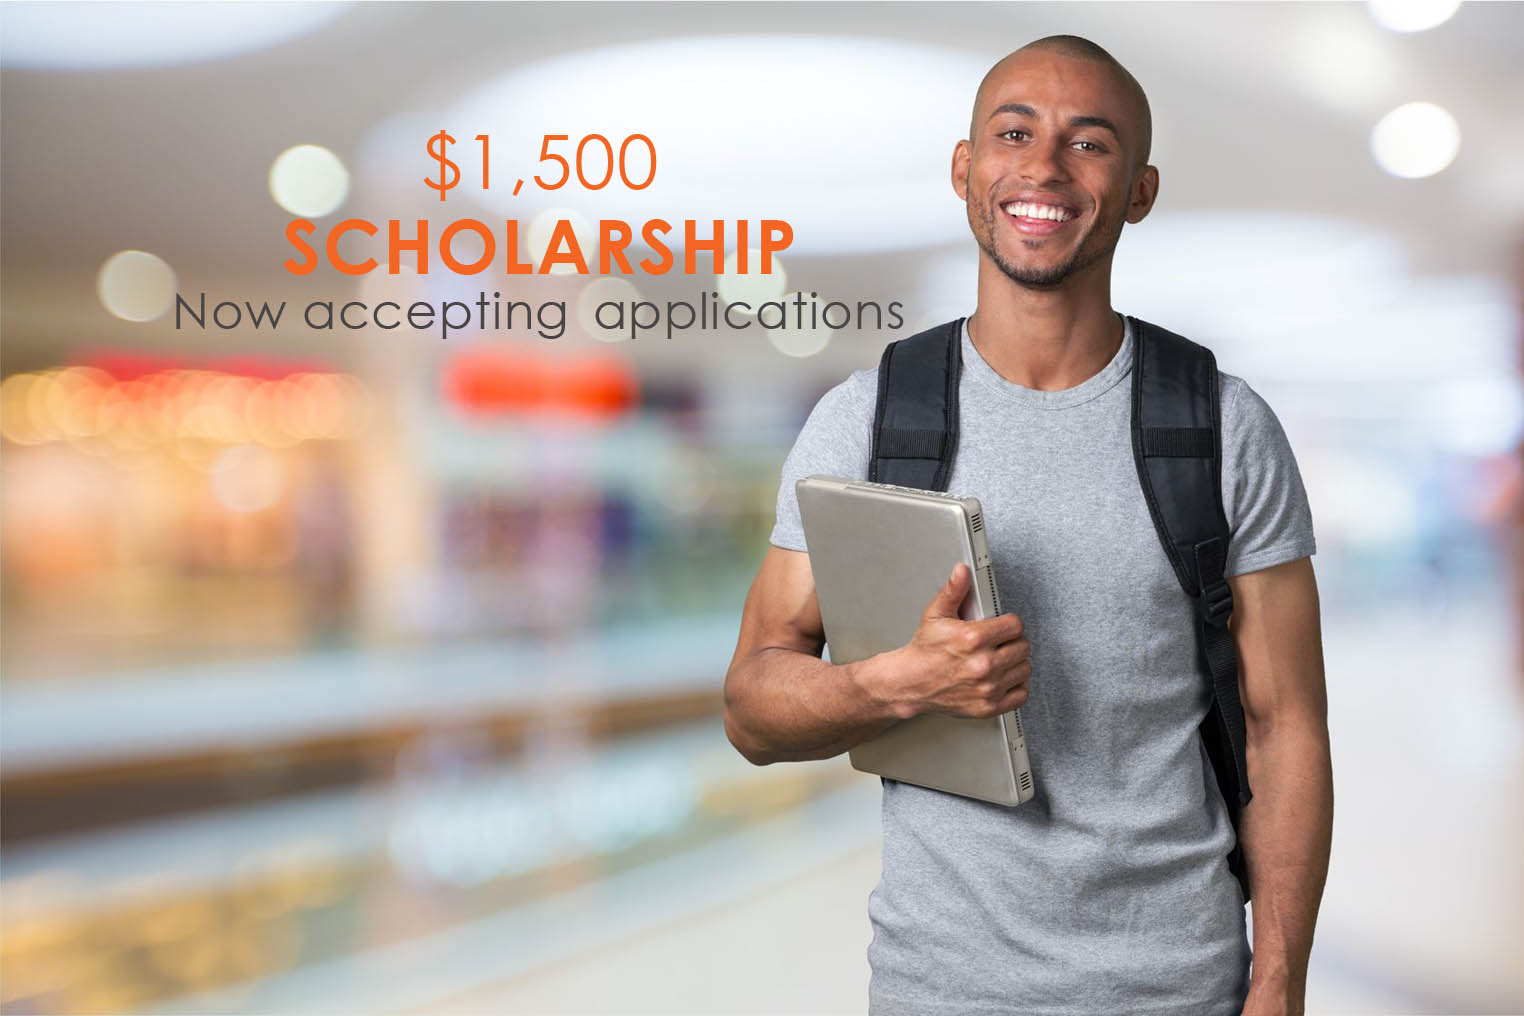 Scholarship Applications Now Accepted